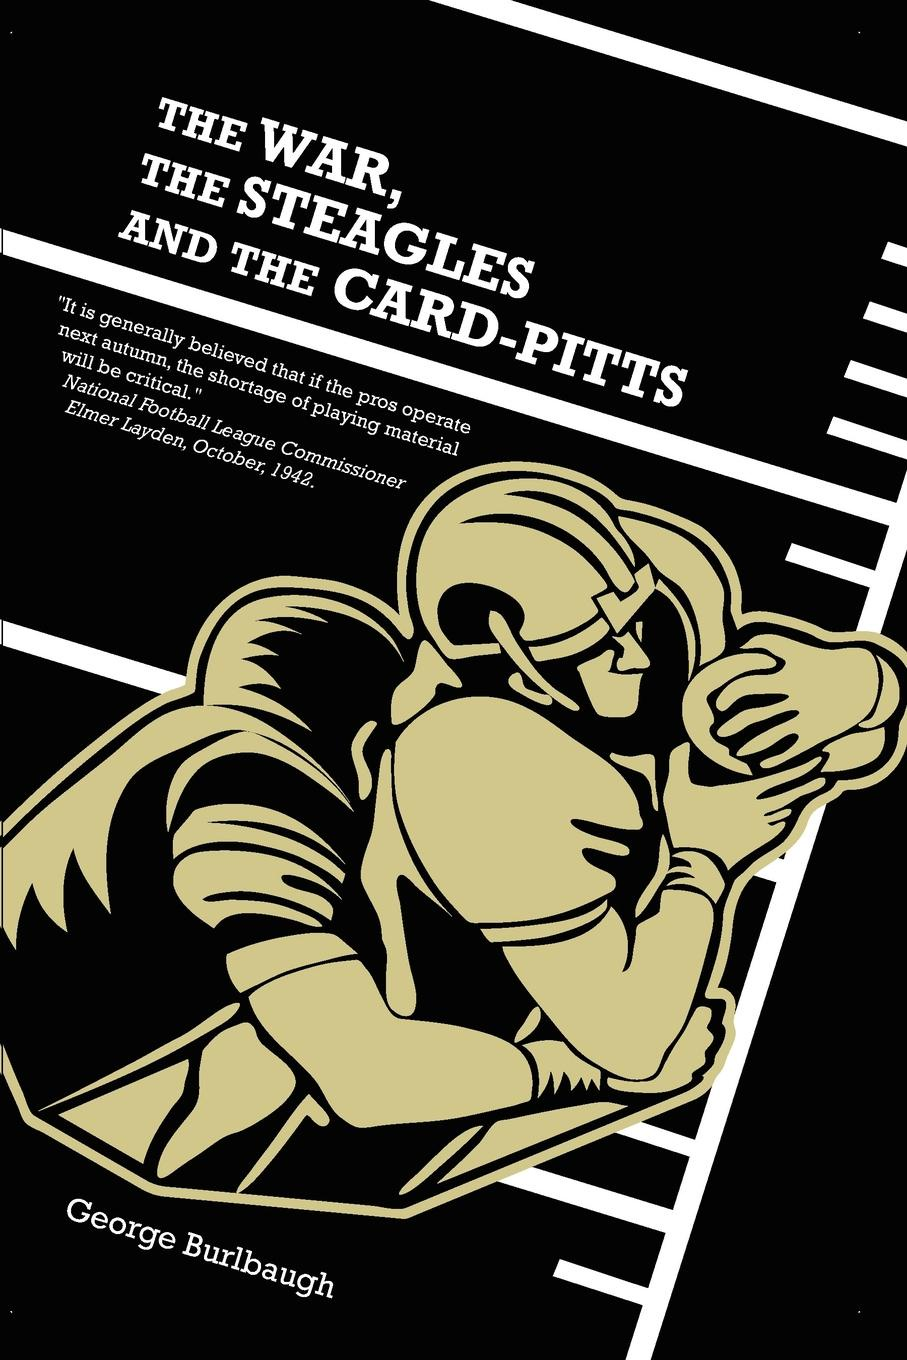 George Burlbaugh The War, the Steagles and the Card-Pitts mr andrew yie roberts pitts